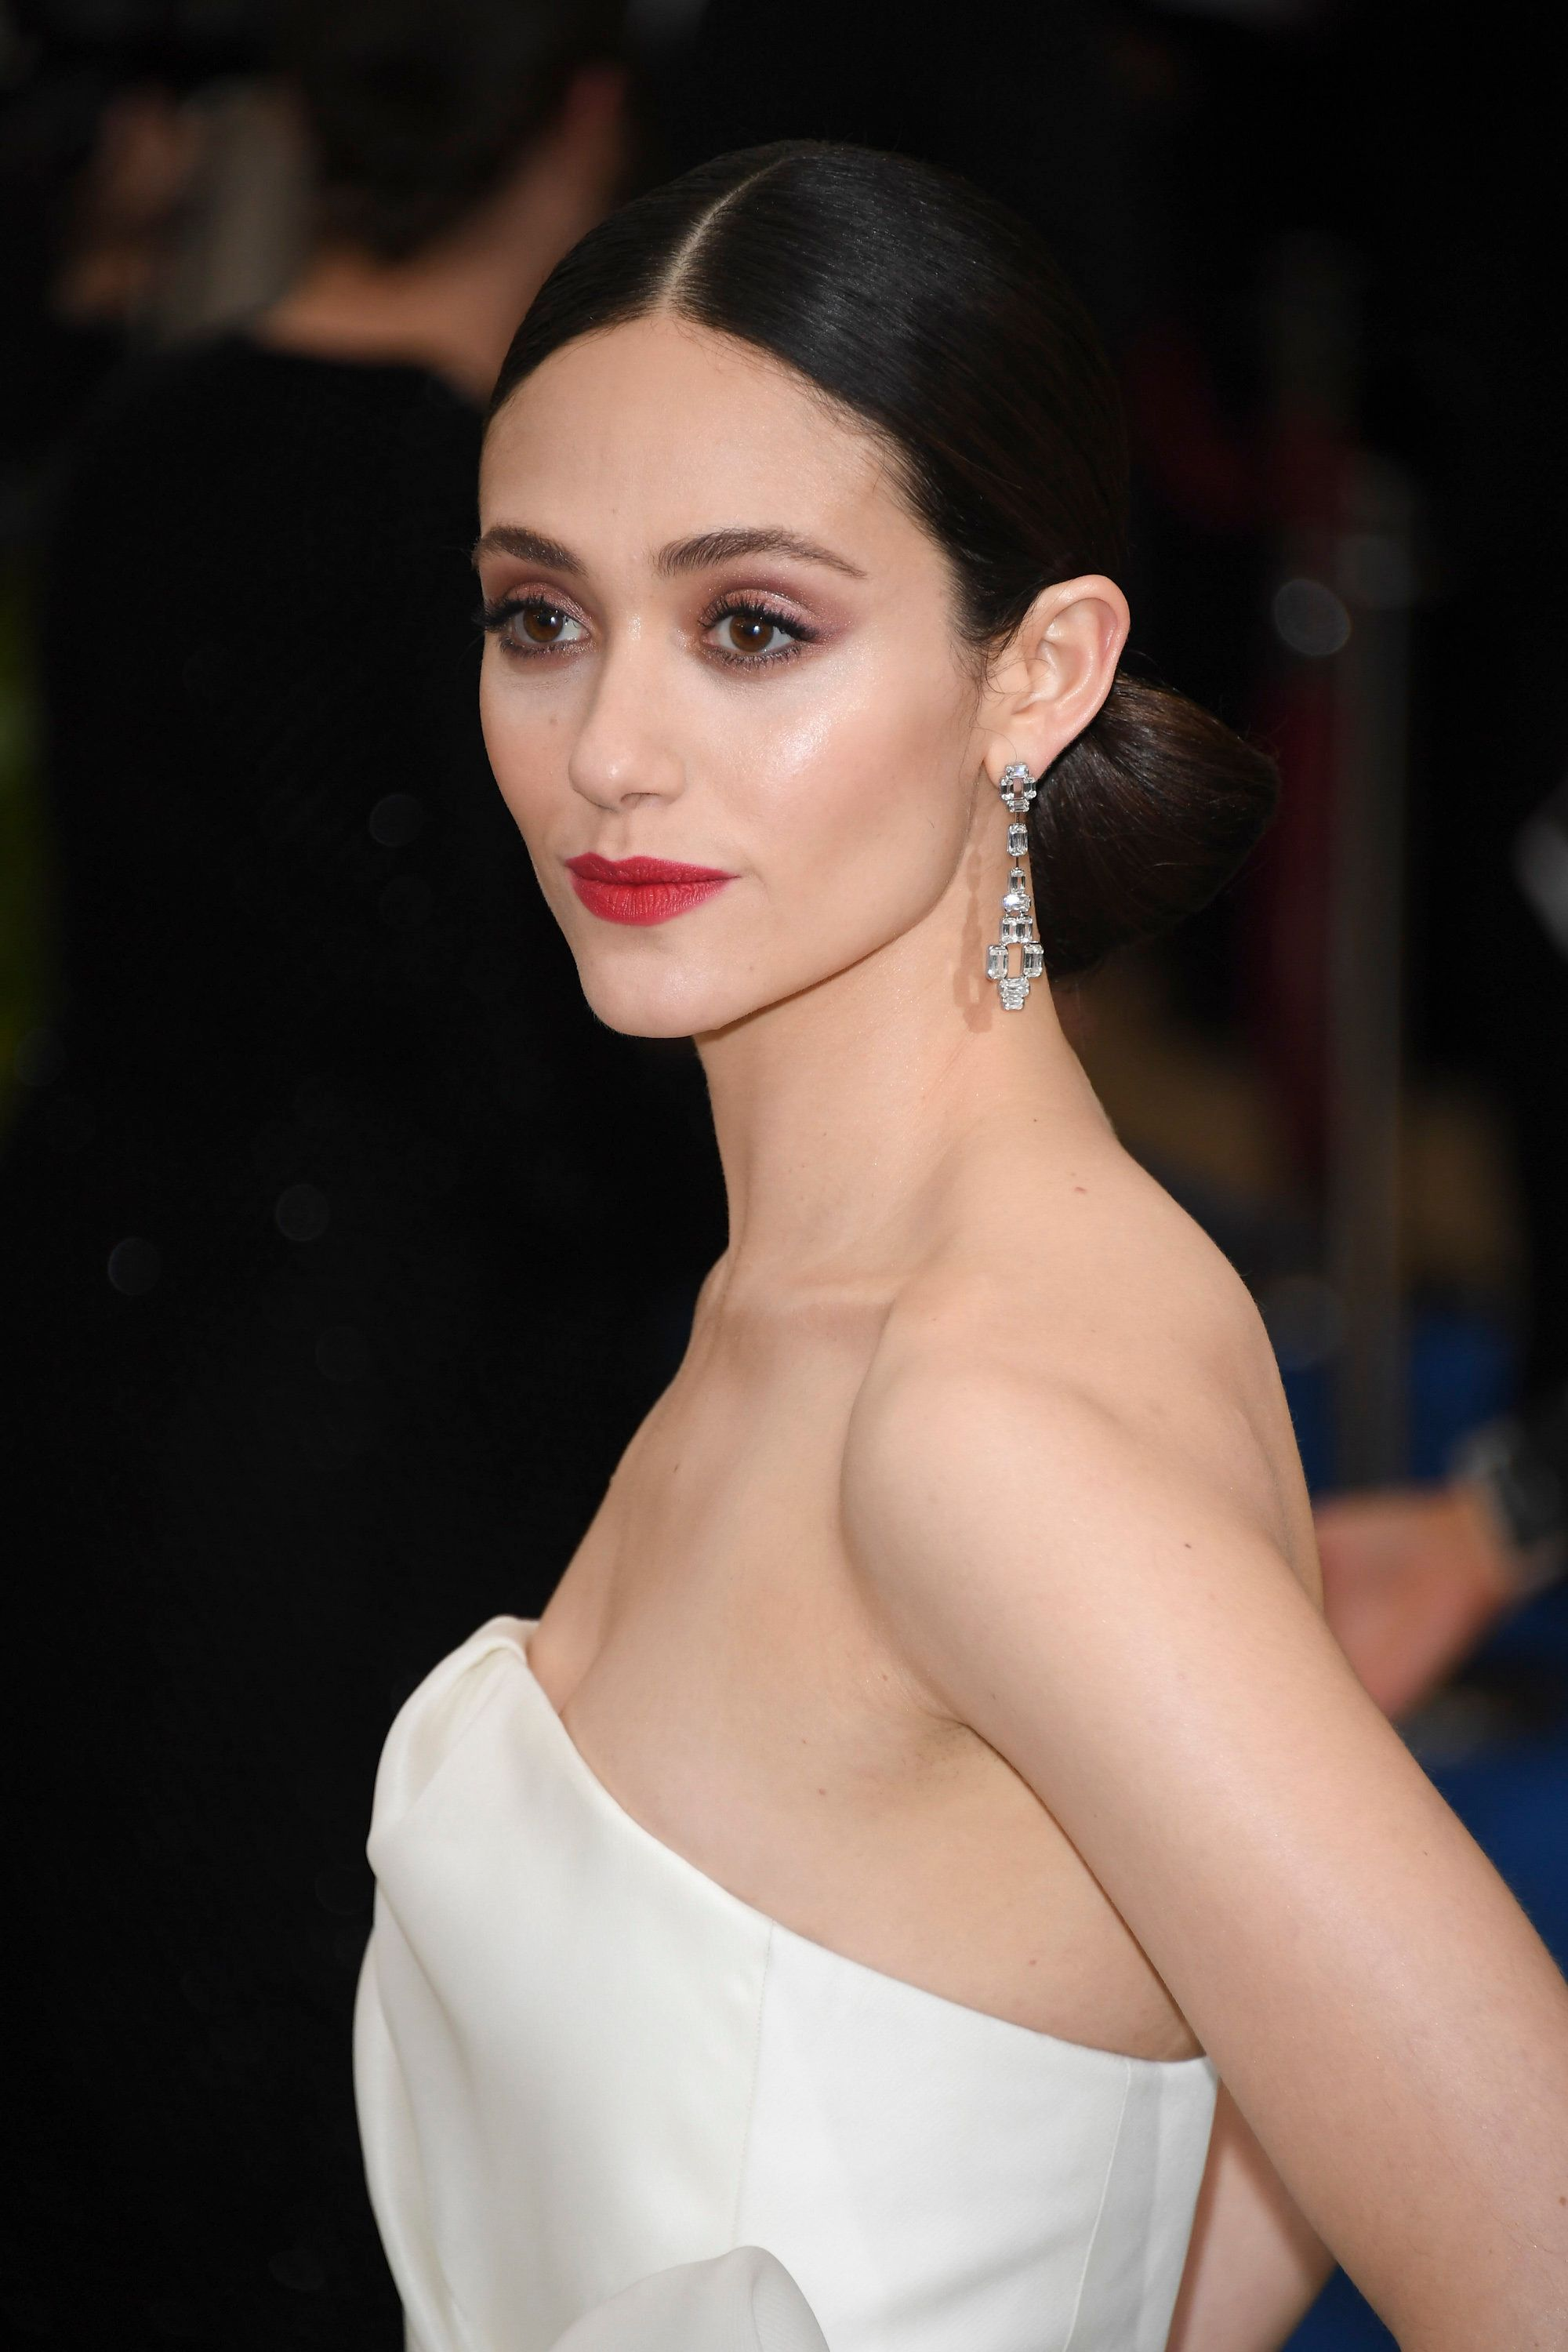 NEW YORK, NY - MAY 01:  Emmy Rossum attends 'Rei Kawakubo/Comme des Garcons: Art Of The In-Between' Costume Institute Gala - Arrivals at Metropolitan Museum of Art on May 1, 2017 in New York City.  (Photo by Venturelli/WireImage)